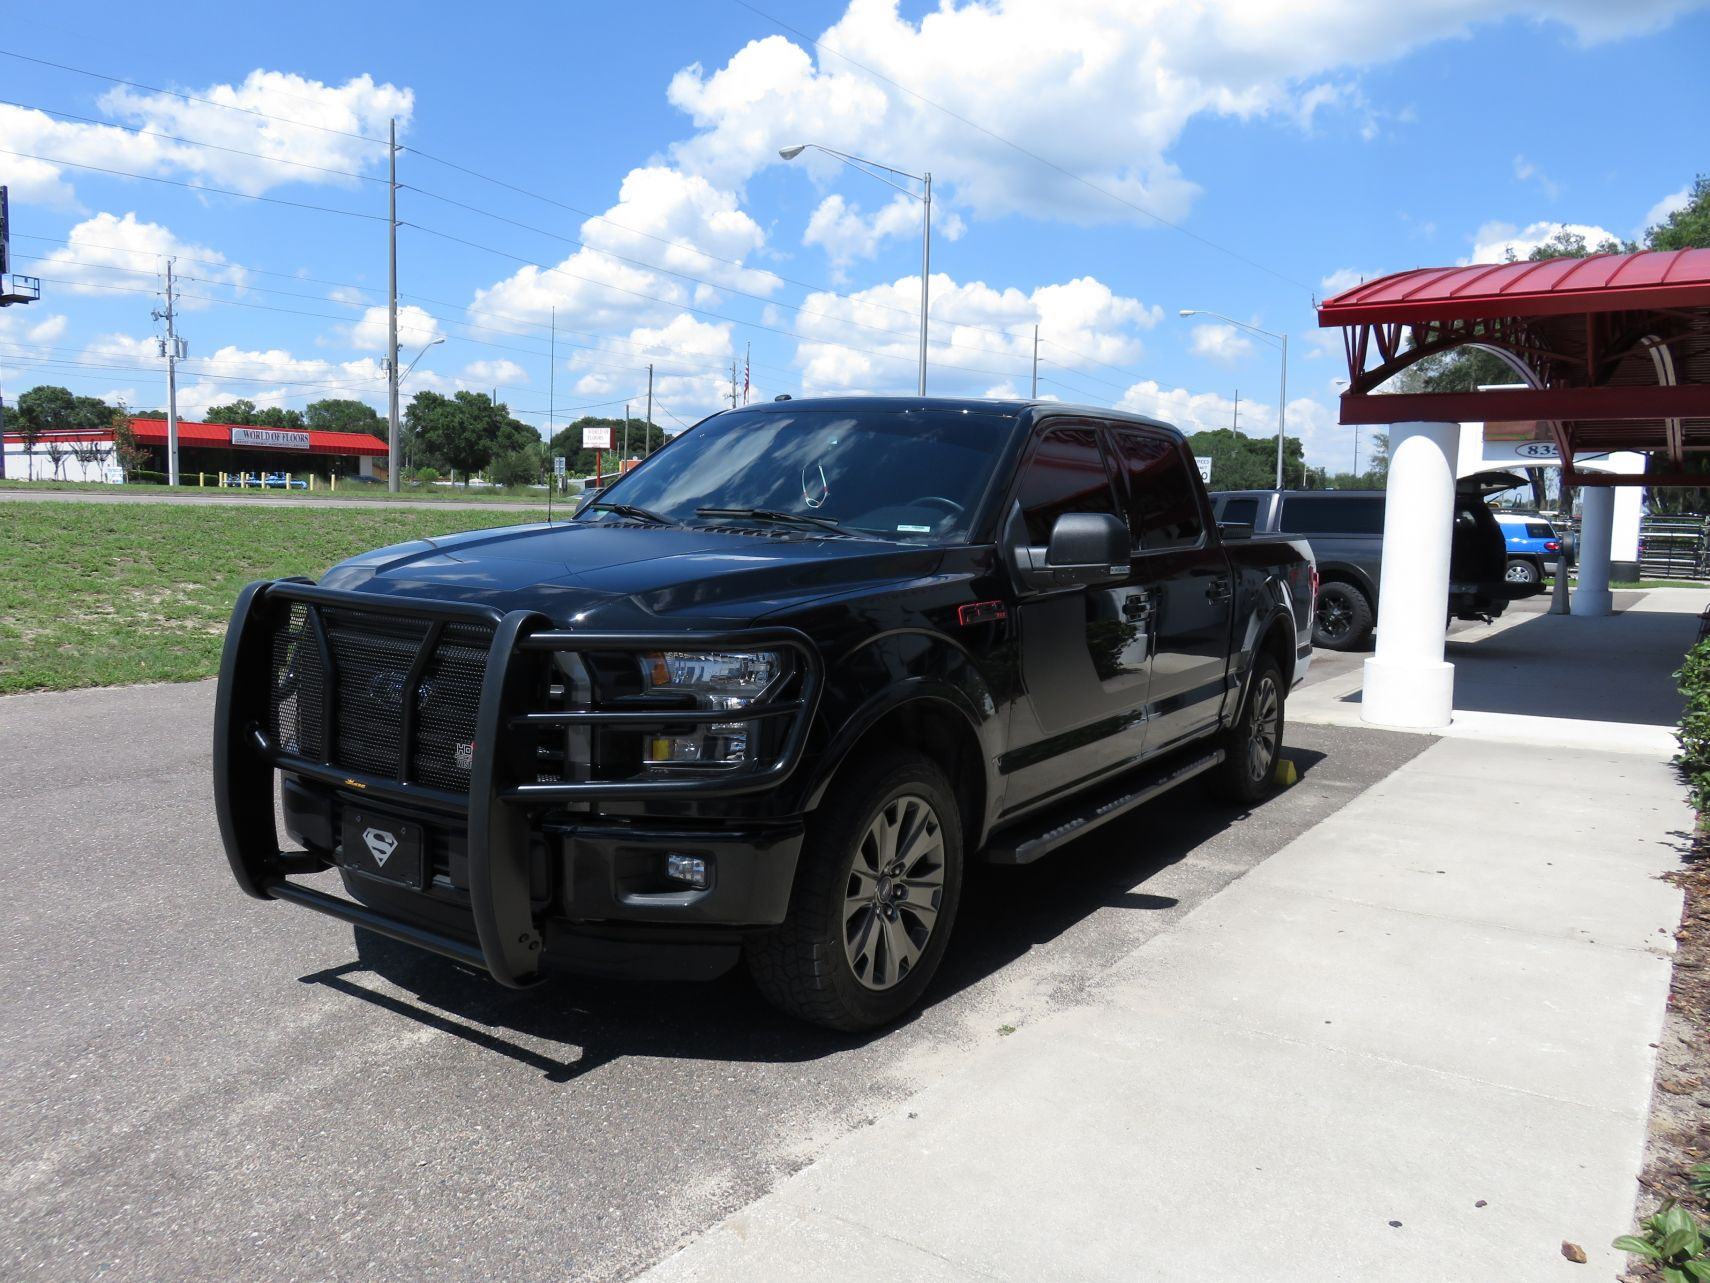 F150 Interior Accessories >> Blacked Out 2017 Ford F150 with Grille Guard - TopperKING : TopperKING | Providing all of Tampa ...